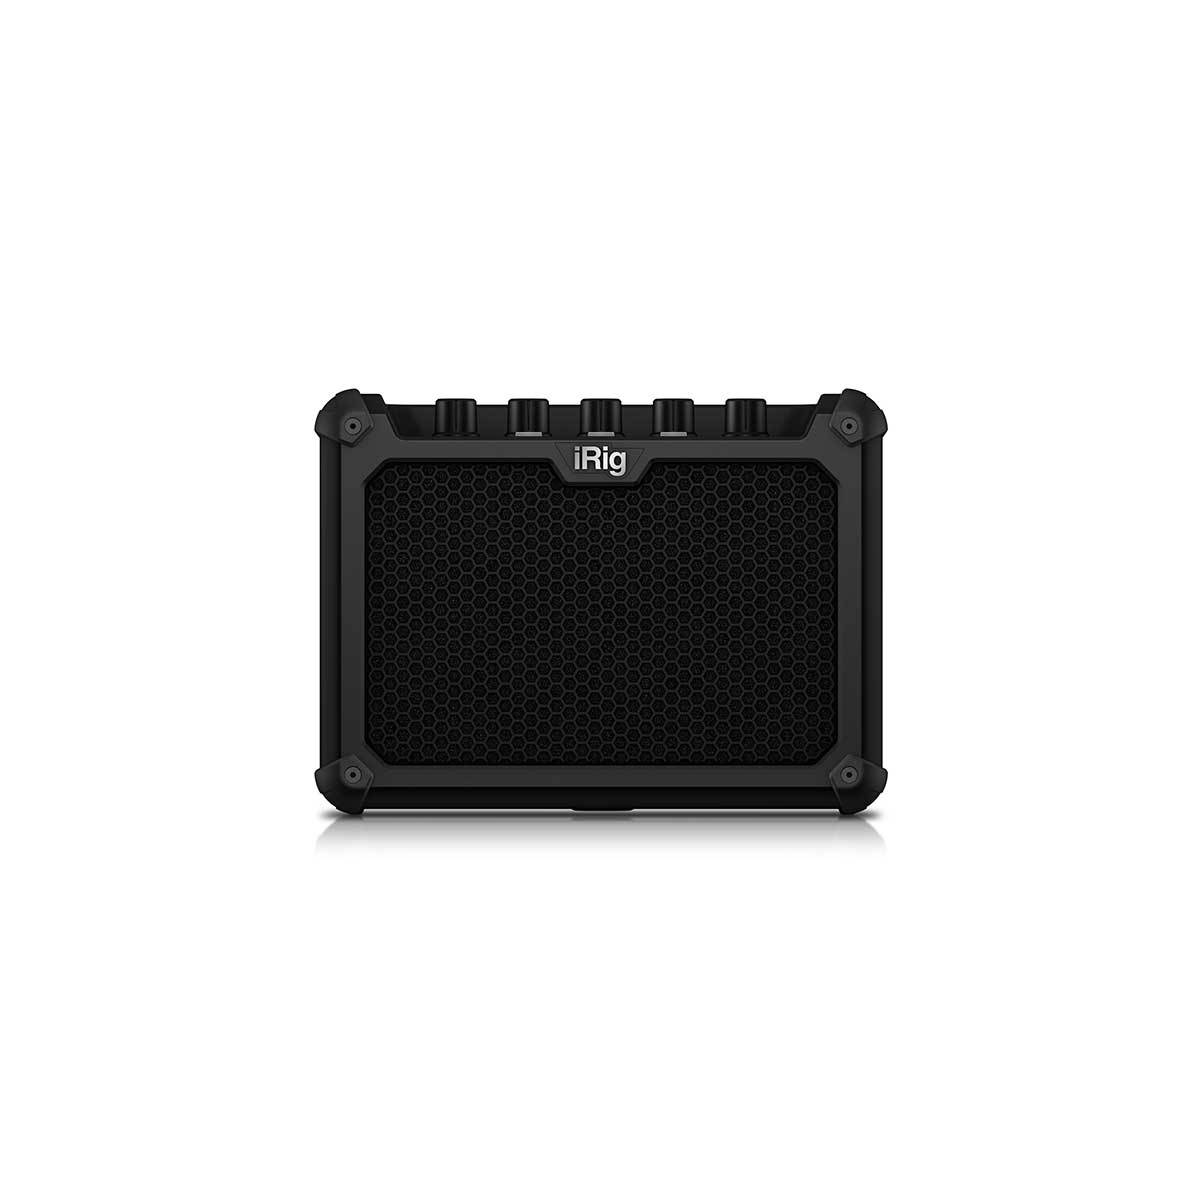 Guitar Amplifiers - IK Multimedia IRig Micro Amp 15W Battery-powered Guitar Amplifier With IOS/USB Interface